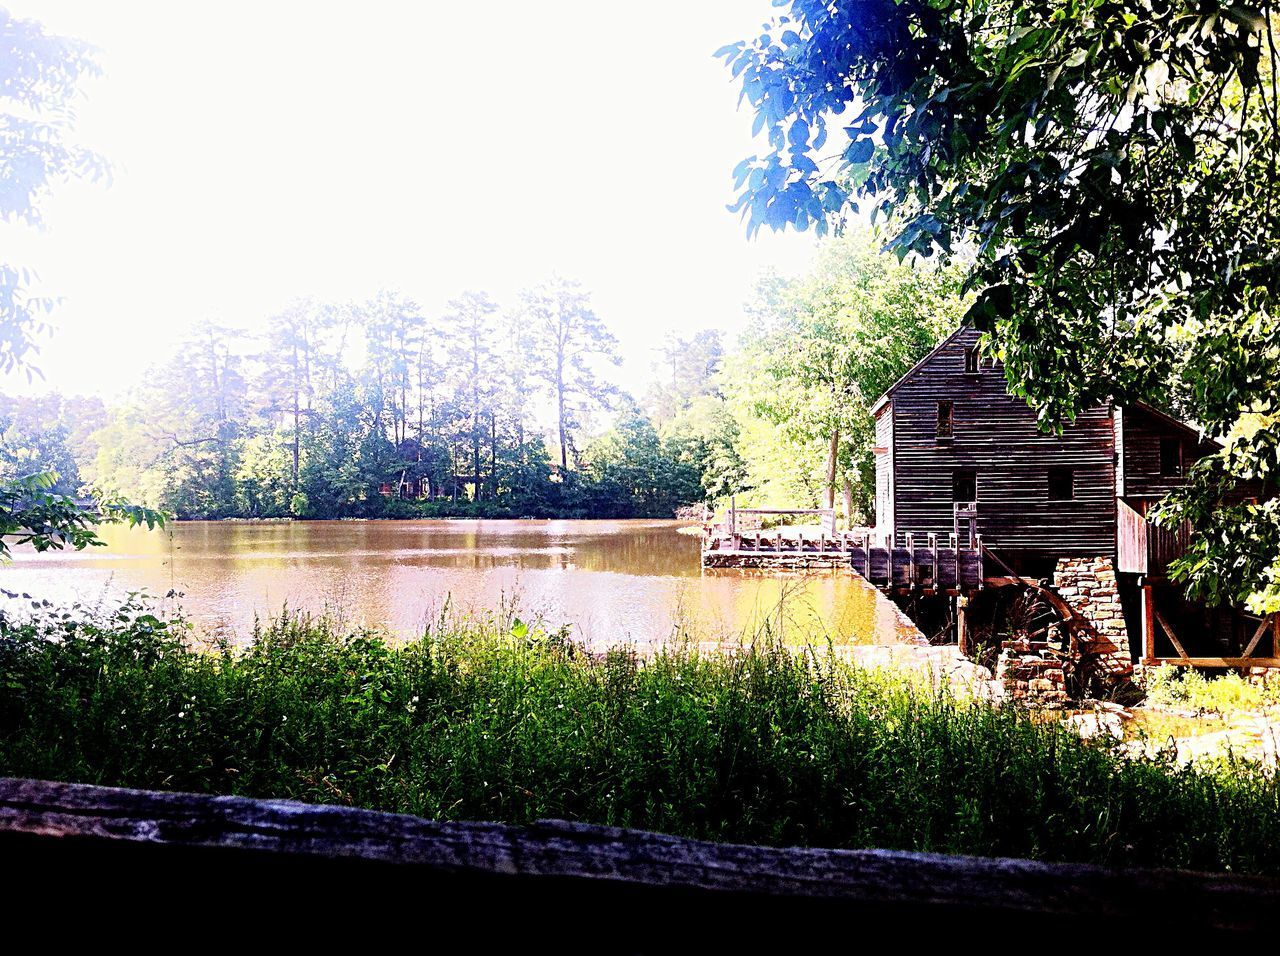 A Lake and A Watermill, North Carolina Outdoors Nature Tree Building Exterior Built Structure Lake No People Day Brightness Vs. Darkness Sunny Day Light And Shadow Sun And Fog Trees In The Fog Tranquility Peace And Quiet Old Buildings Architecture Calm Waters Hidden Oasis